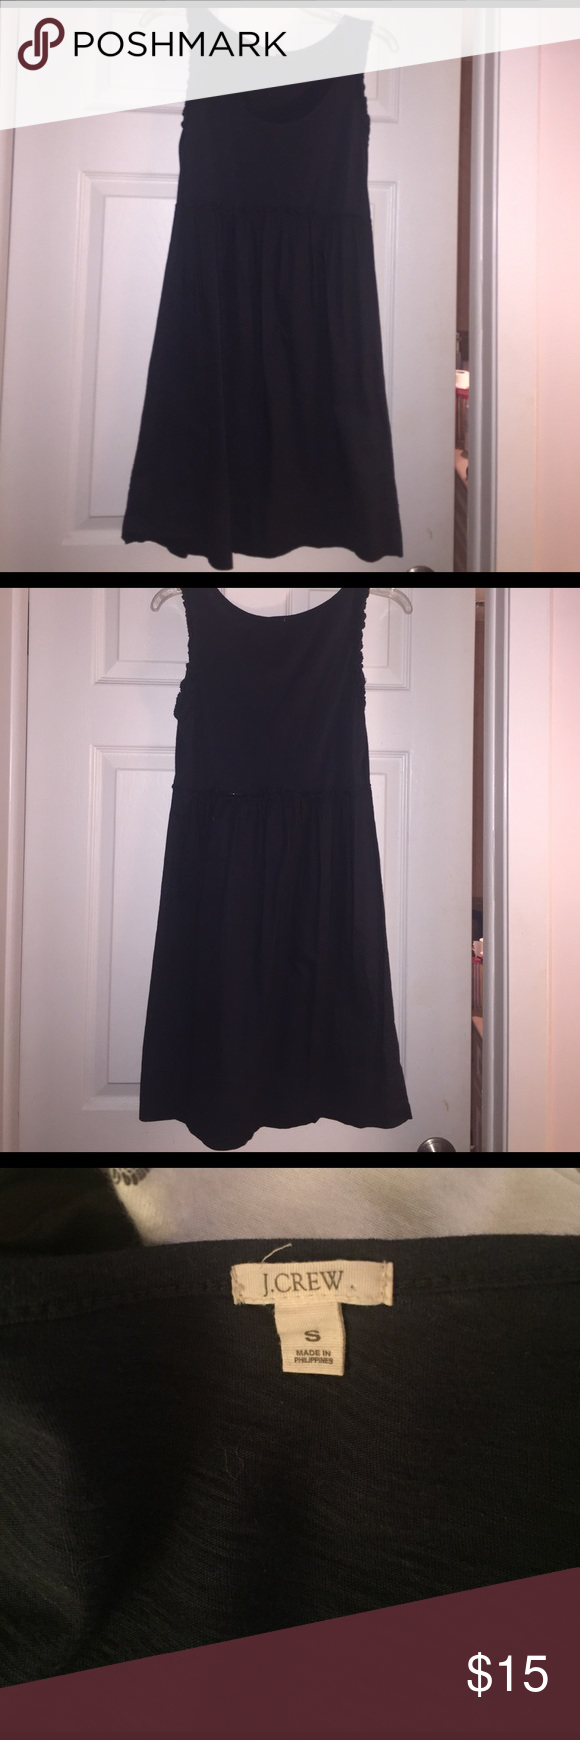 Jcrew charcoal gray cotton dress - size small Charcoal gray jcrew cotton dress size small. In great condition. Great for summer. Perfect for brunch or to wear as a swim coverup. Only worn a few times. Only getting rid of because I'm moving and have to clean out my closet. J. Crew Dresses